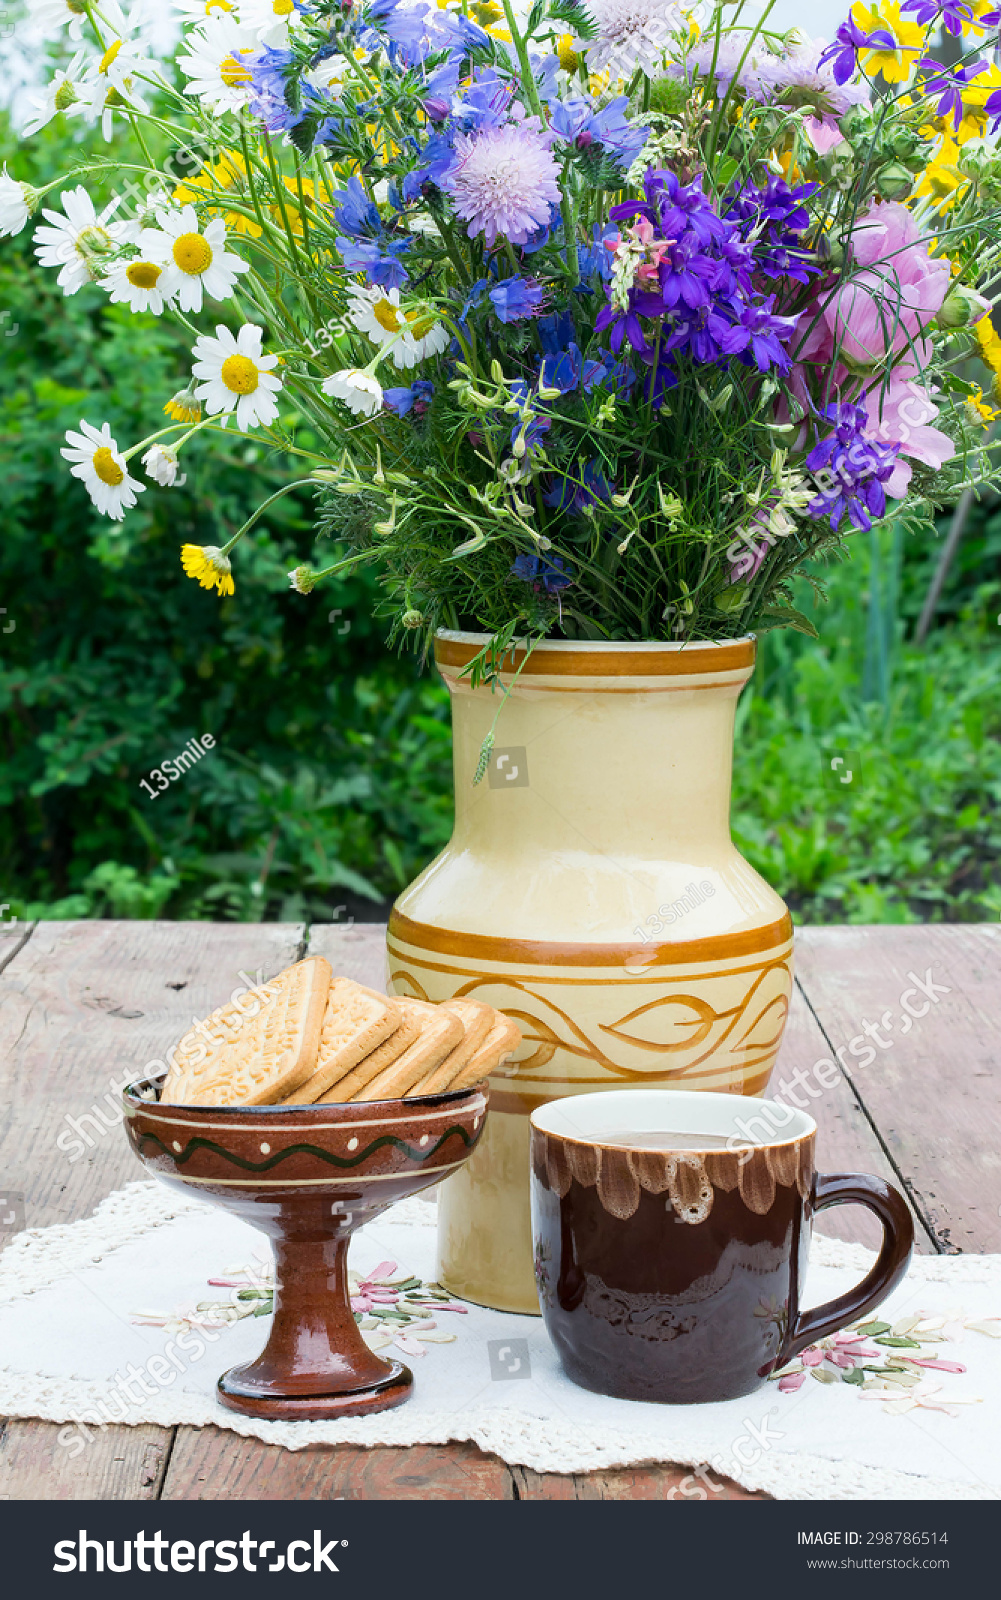 Herbal tea biscuits and a bouquet of wild flowers in a ceramic vase id 298786514 izmirmasajfo